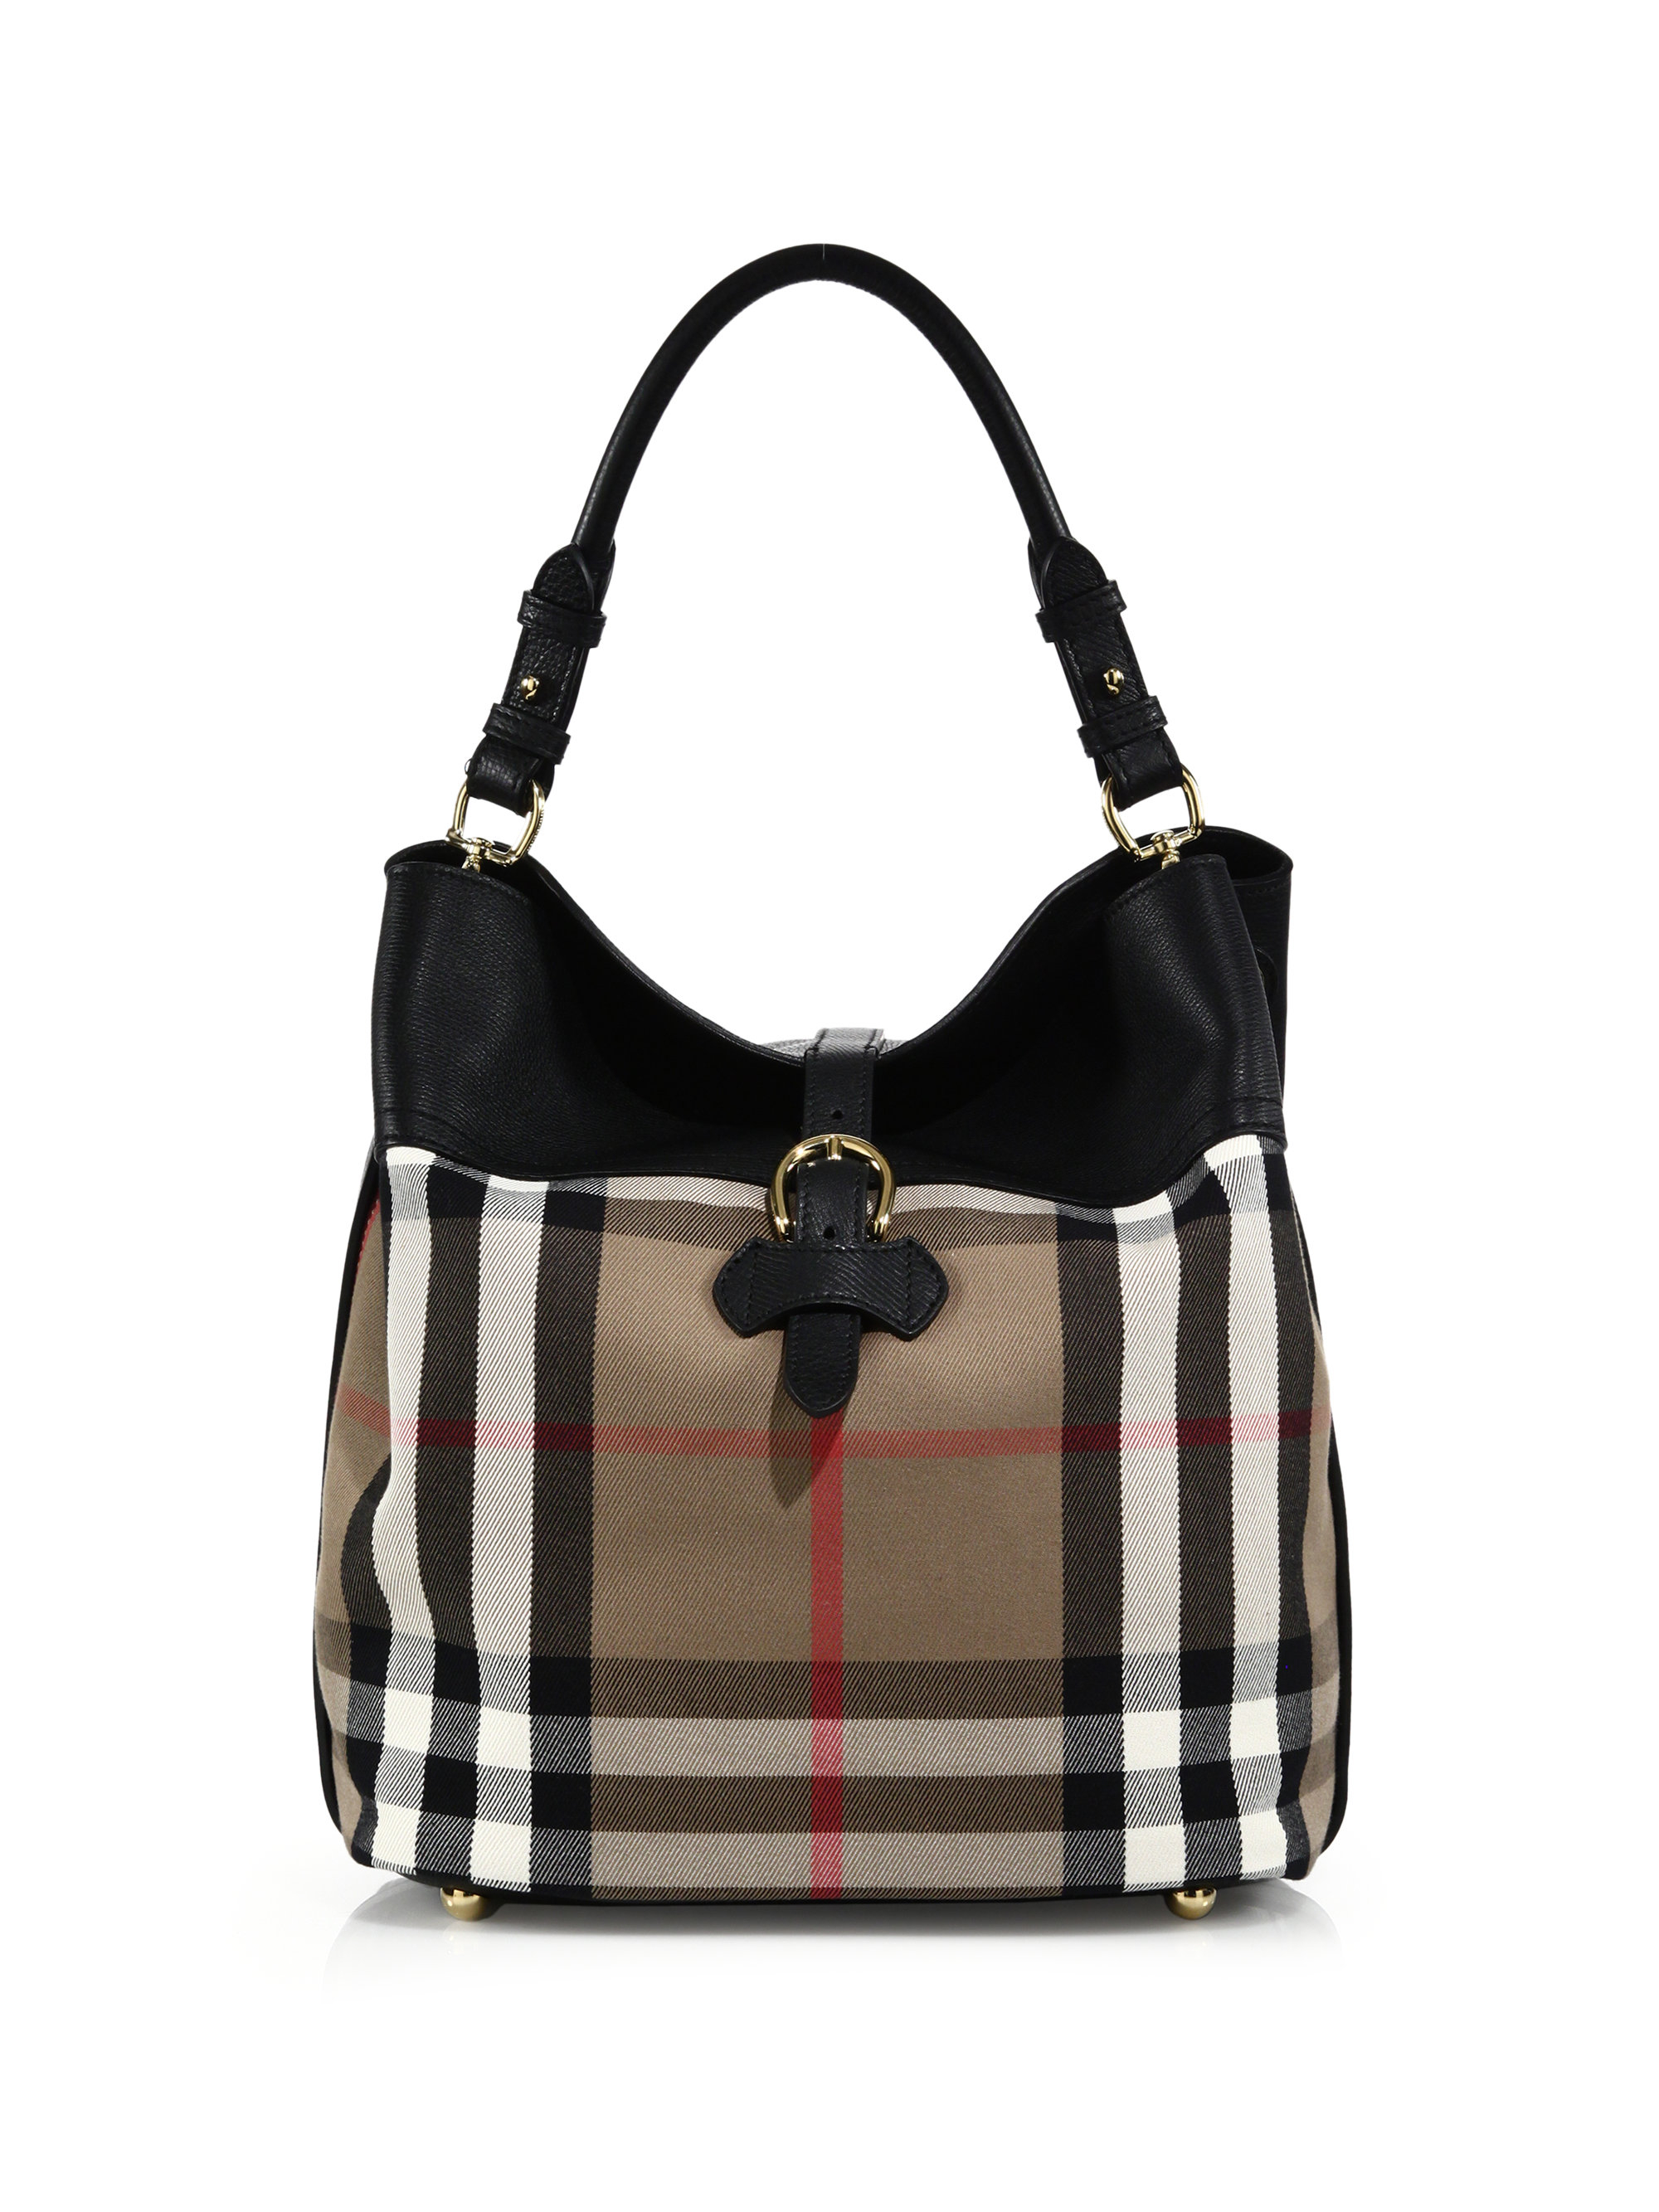 Burberry Sycamore Medium Cotton Amp Leather Hobo Bag In